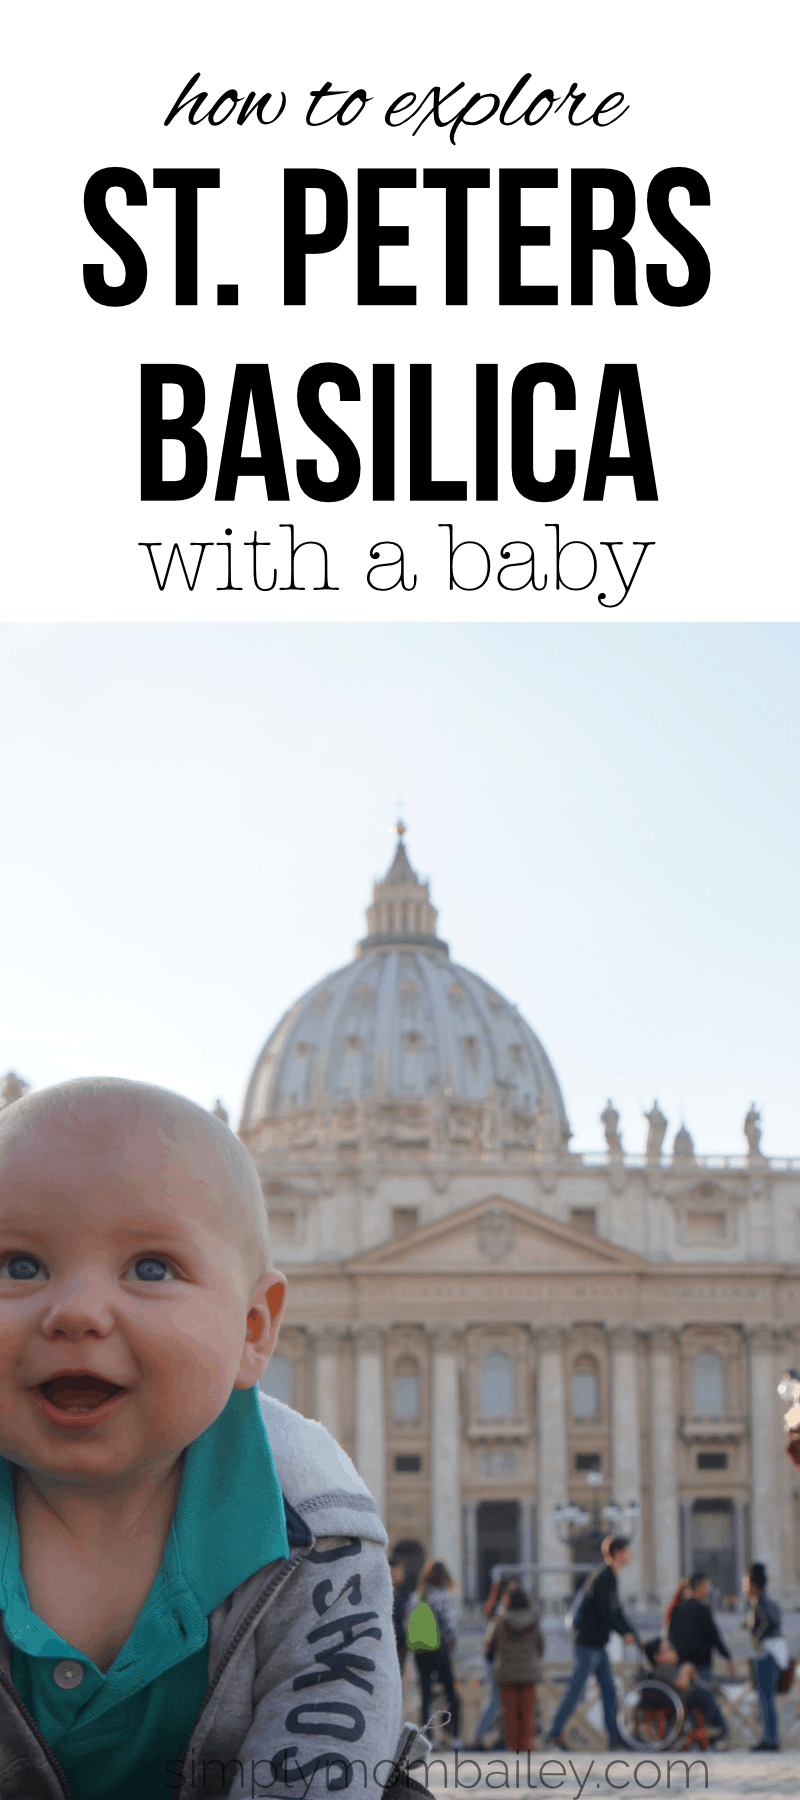 How to visit St. Peters Basilica with baby. Tips and tricks from a real life perspective.  visiting Rome with baby #travelwithkids #havebabywilltravel #romeitaly #travelitaly #traveleurope #familytravel #europeantravel #letsgo #traveltips #traveltricks #placestogowithbaby